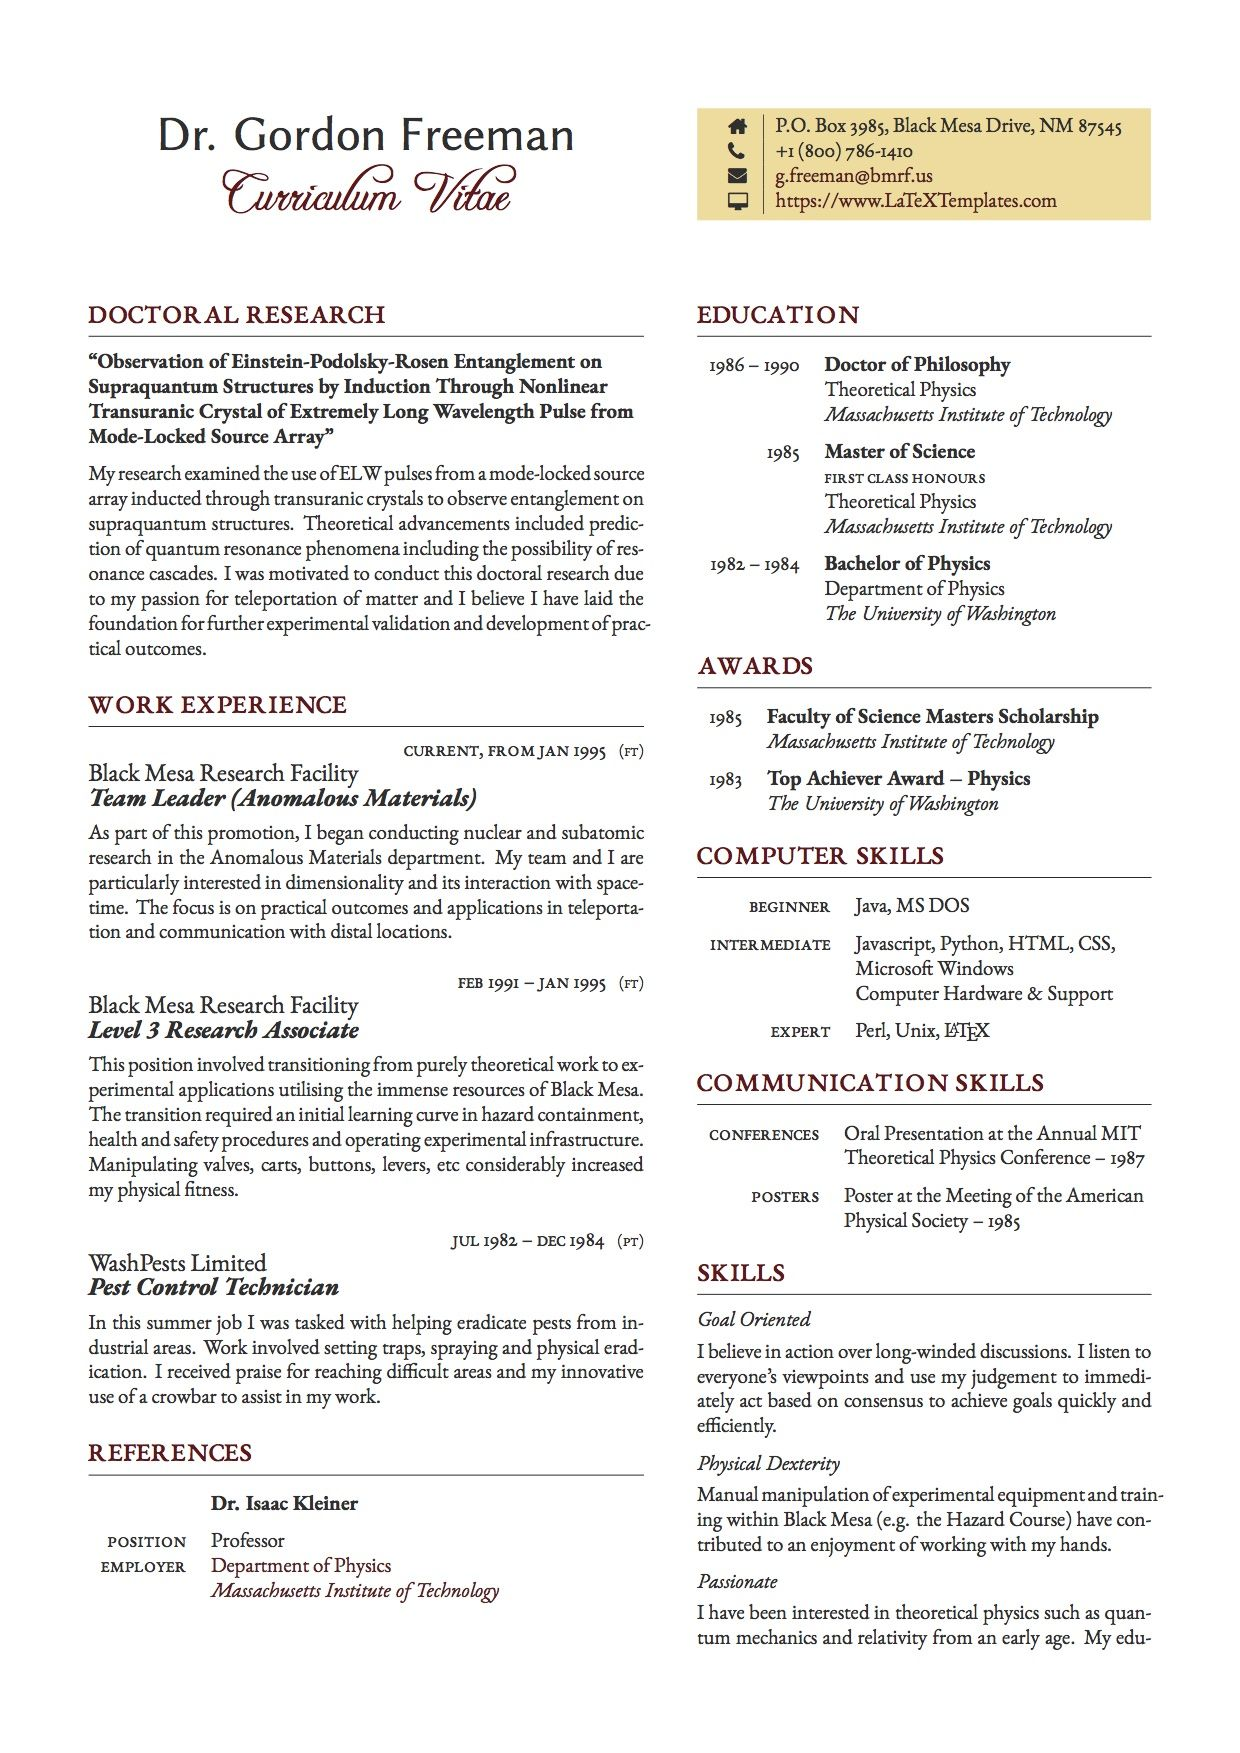 Freeman CV LaTeX Template